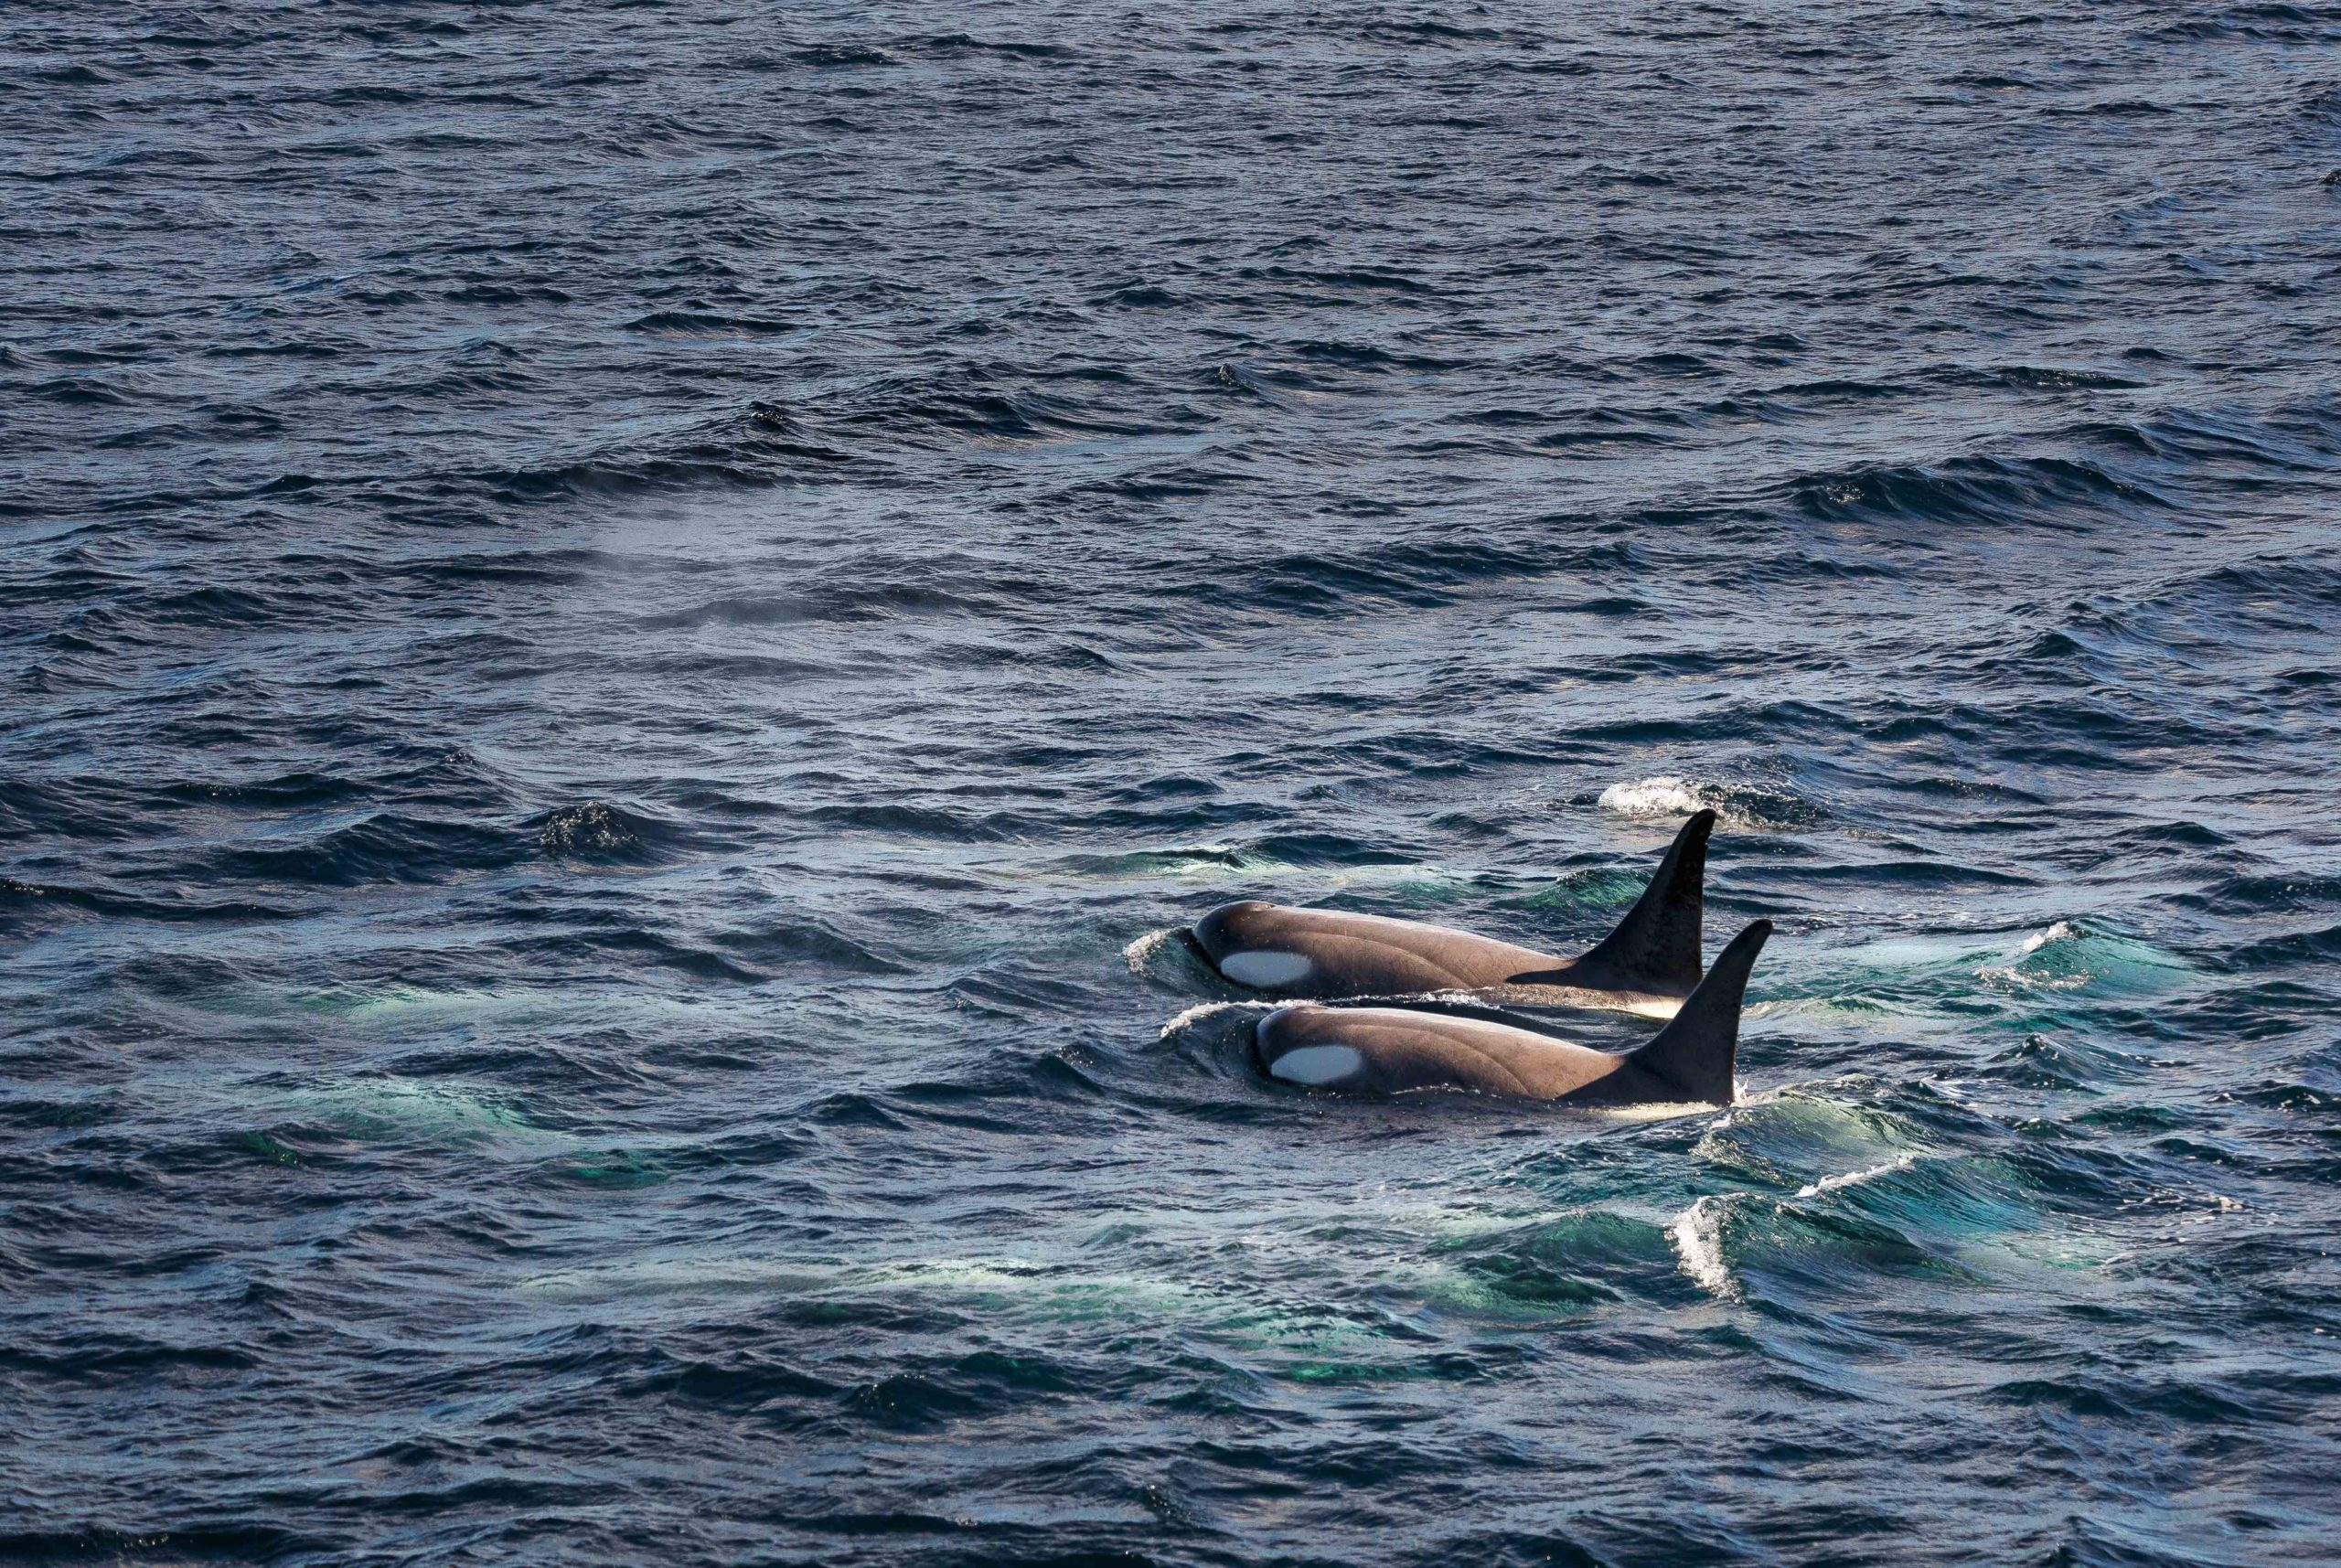 two orcas swimming side by side and surfacing in the waters of Antarctica